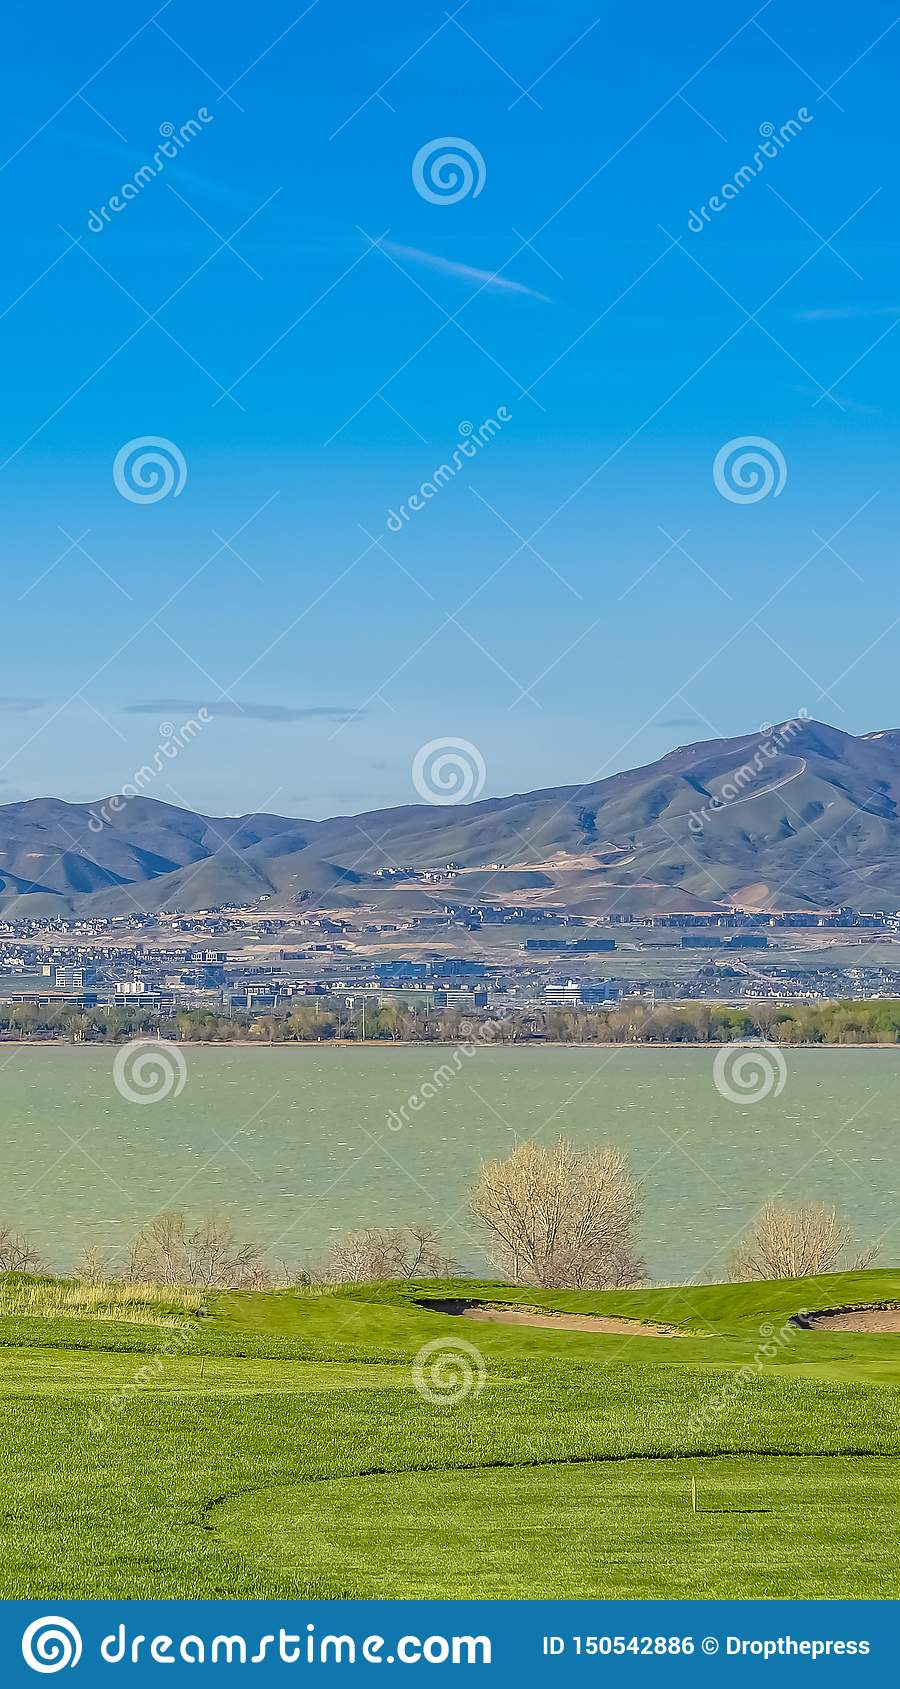 Vertical frame Mountain towering over a vast valley and lake under bright blue sky